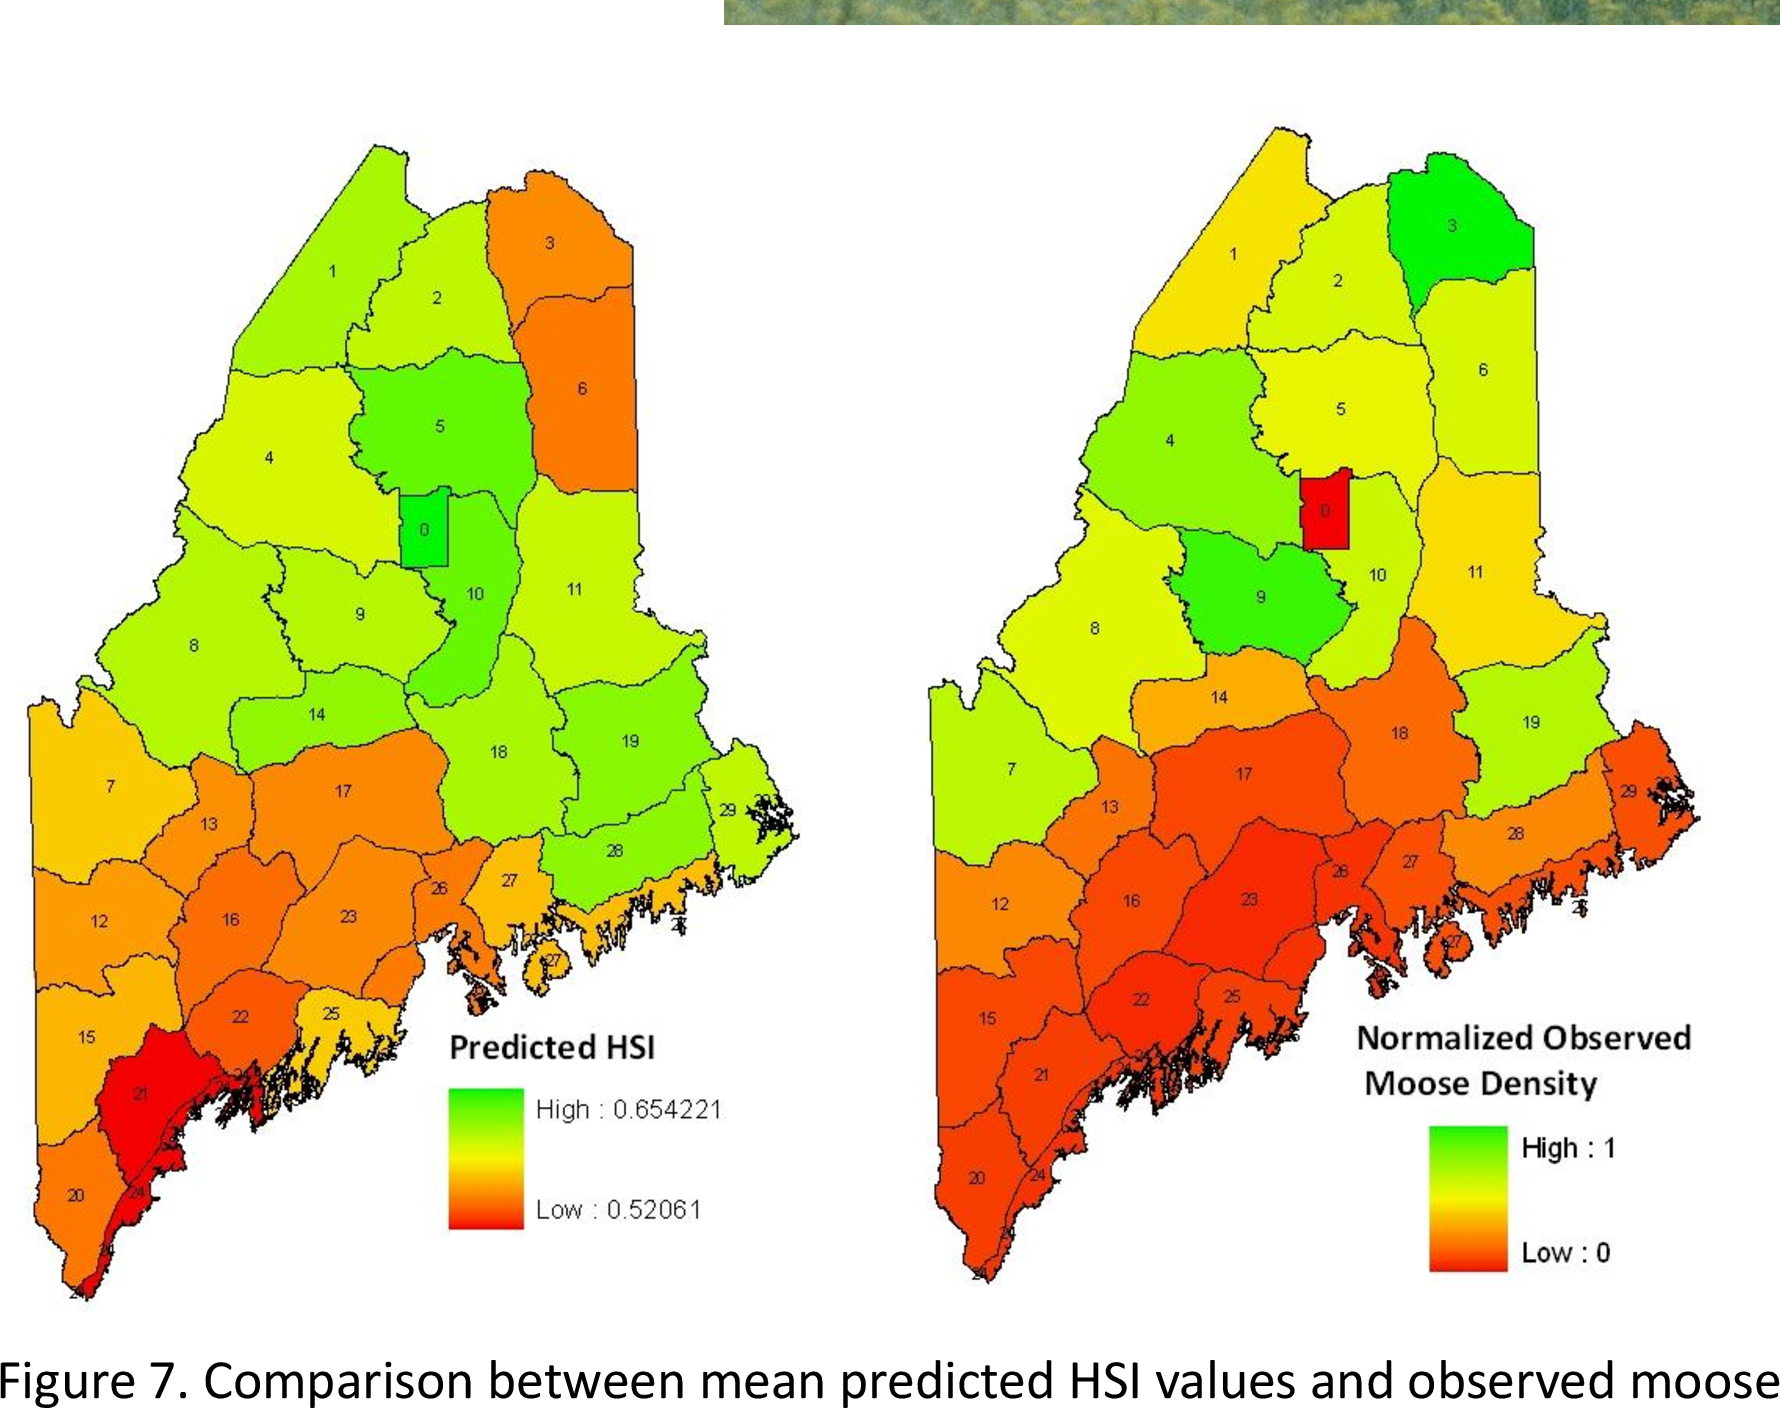 maine deer population map Figure 7 From Modeling Habitat Suitability For Moose Alces Alaces maine deer population map